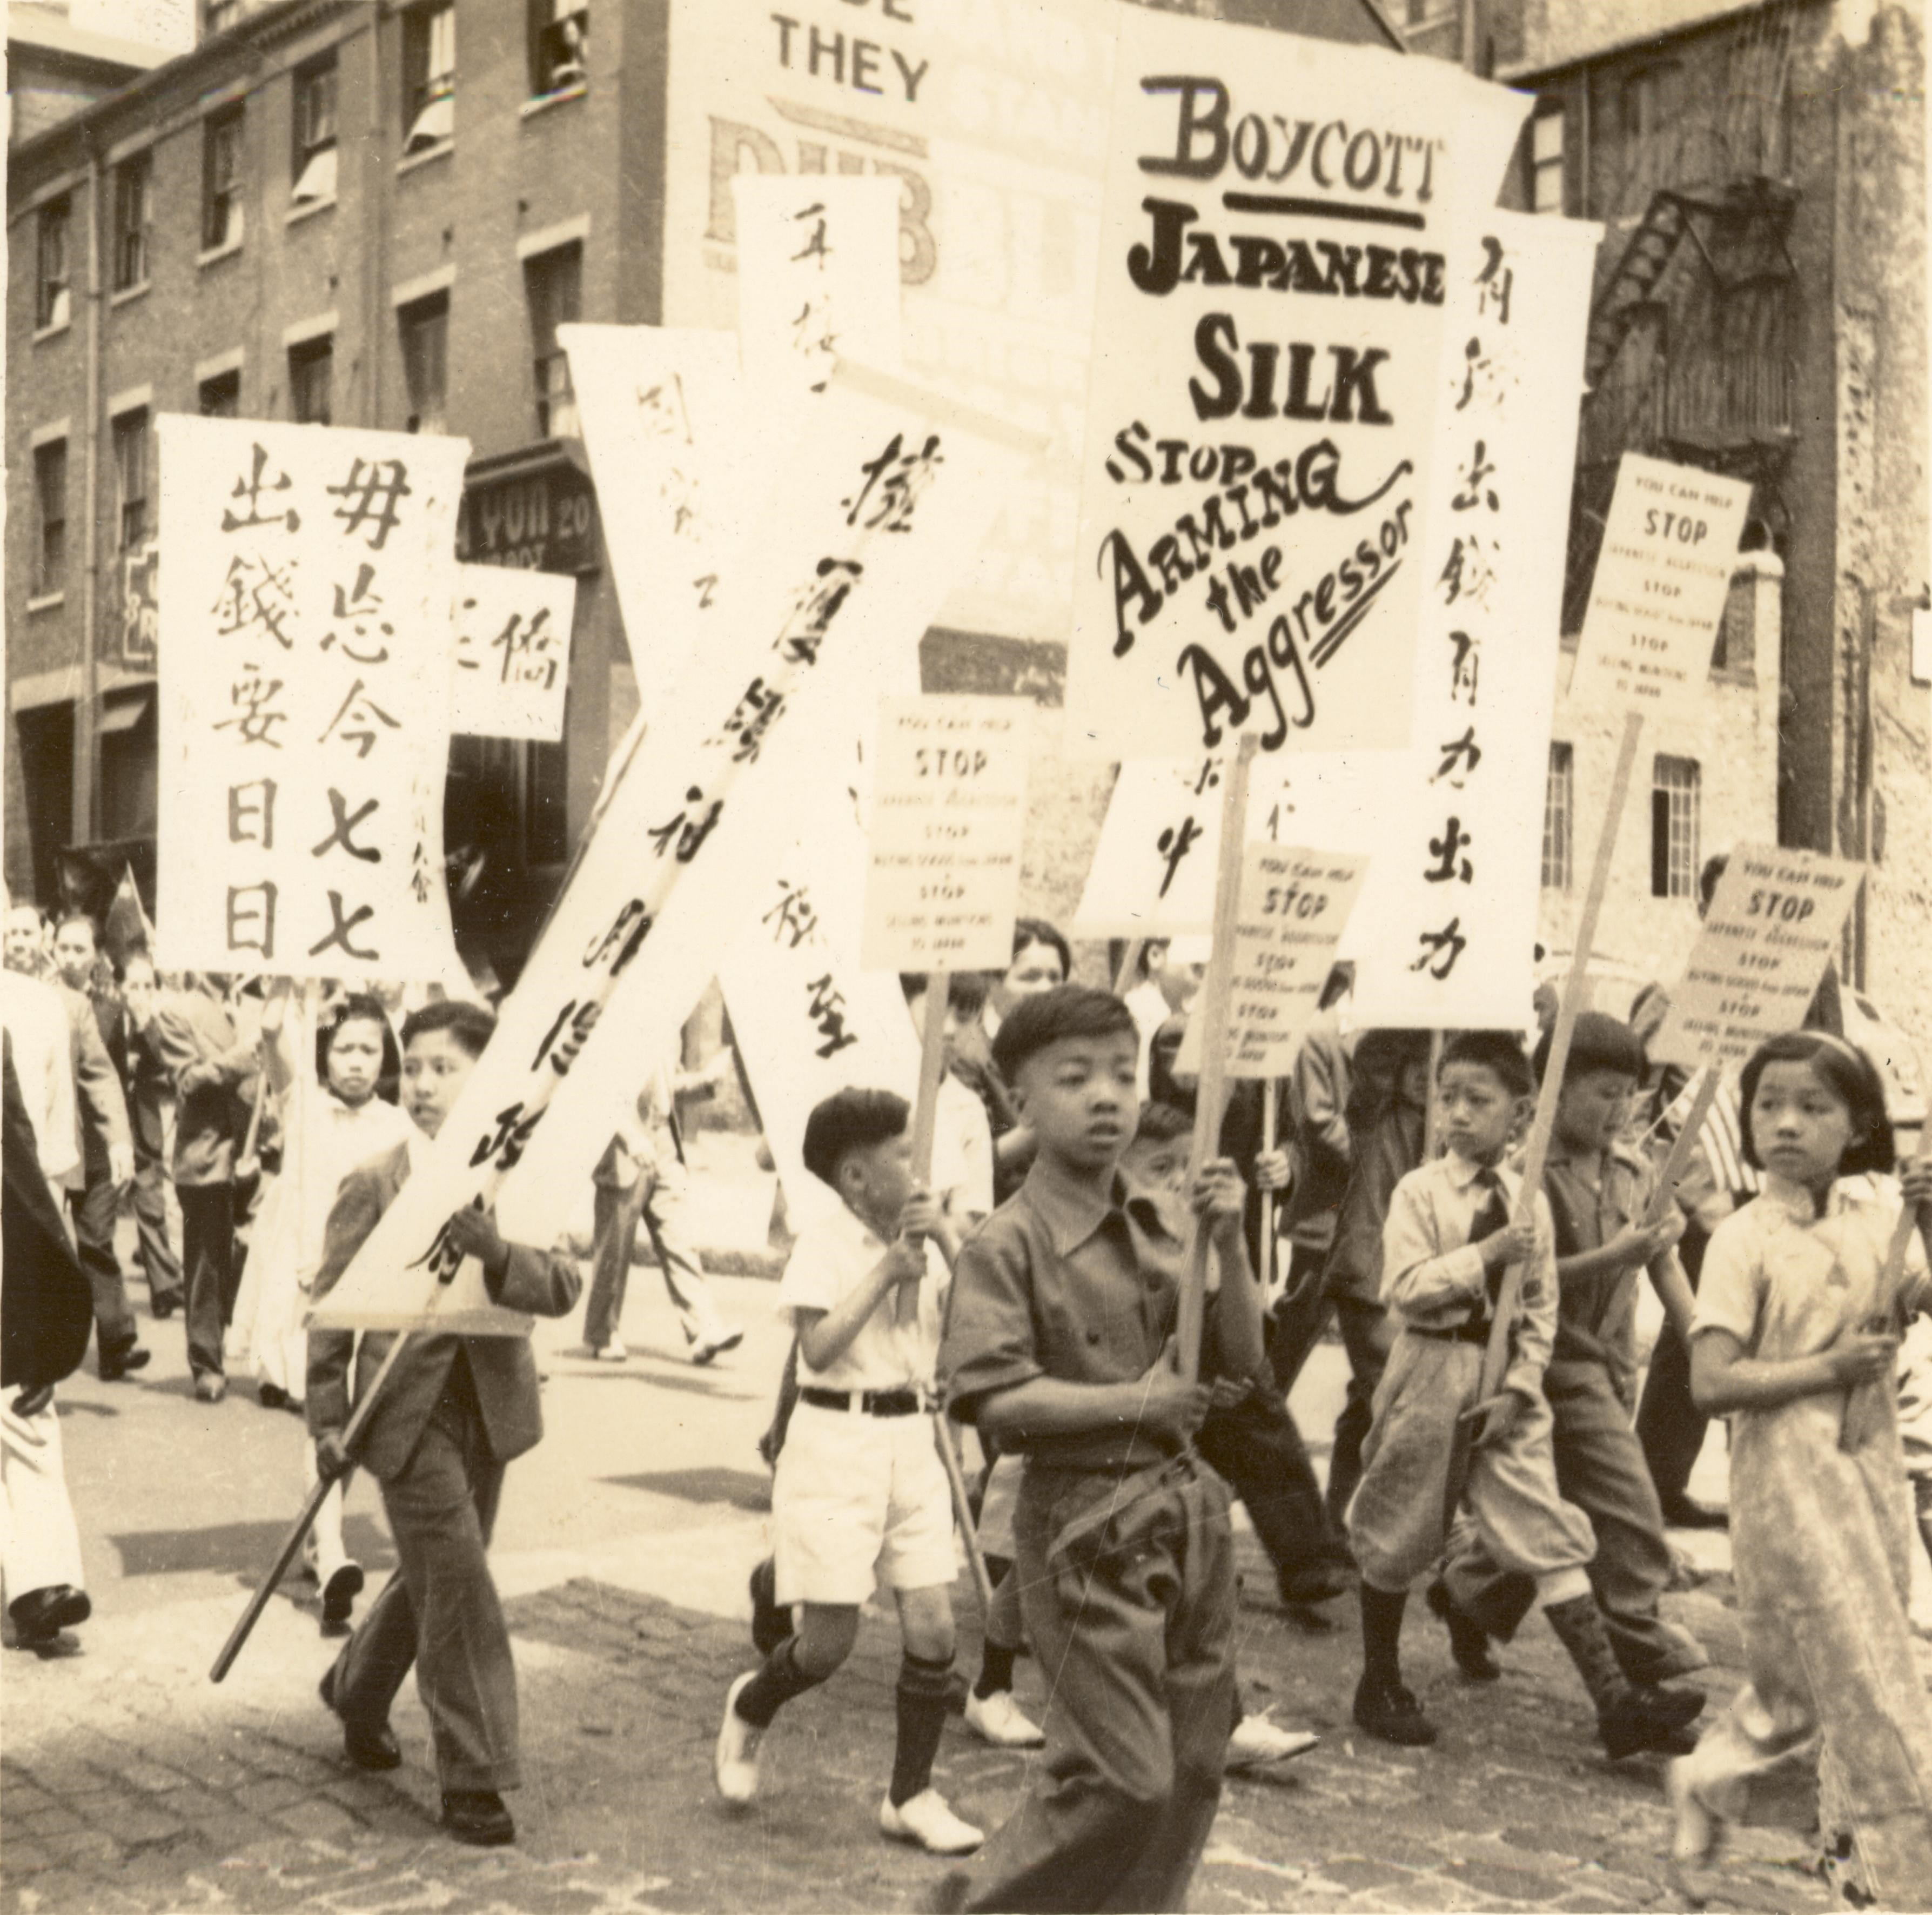 black and white image of young students holding signs in boycott of Japanese silk